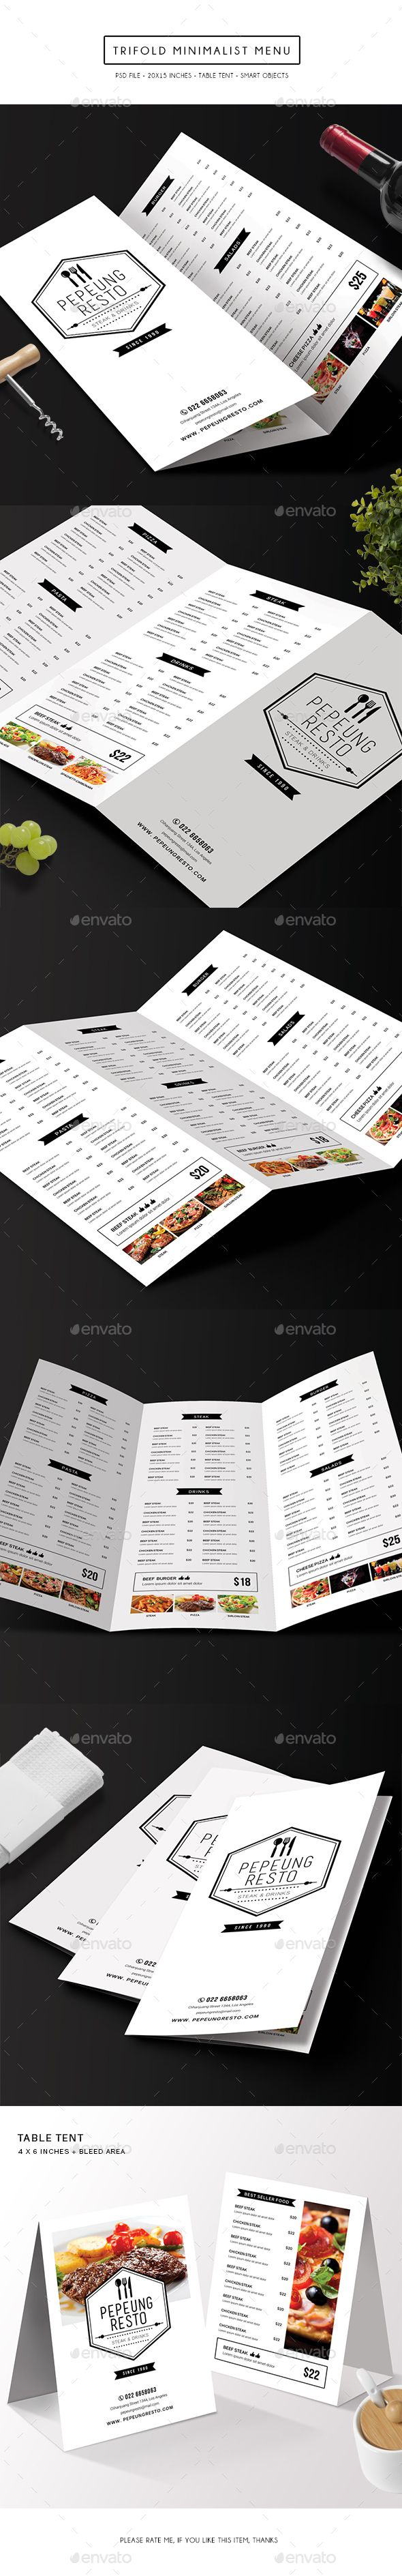 Trifold Minimalist Menu Template PSD #design Download: http://graphicriver.net/item/trifold-minimalist-menu/14377629?ref=ksioks